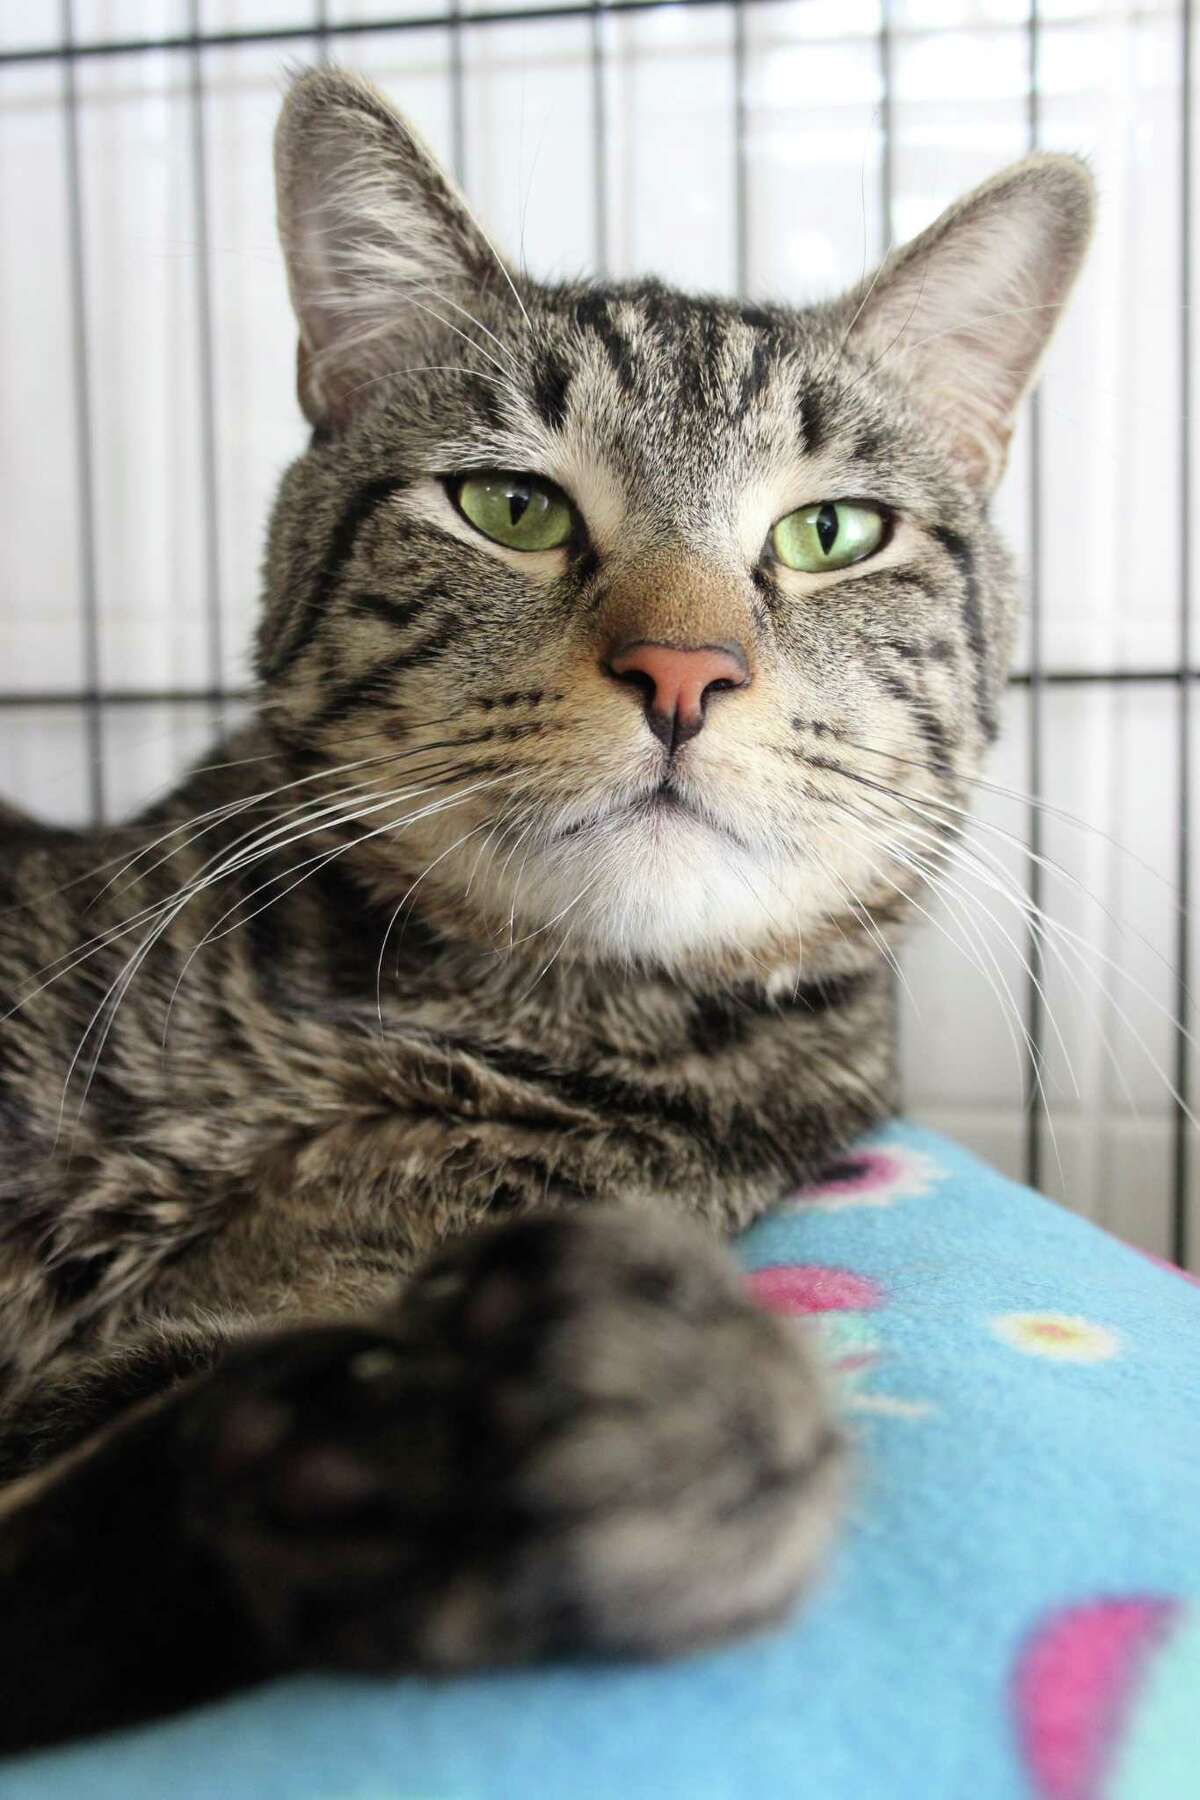 Skywalker, a gorgeous tabby, sweet and loving, is ready for his